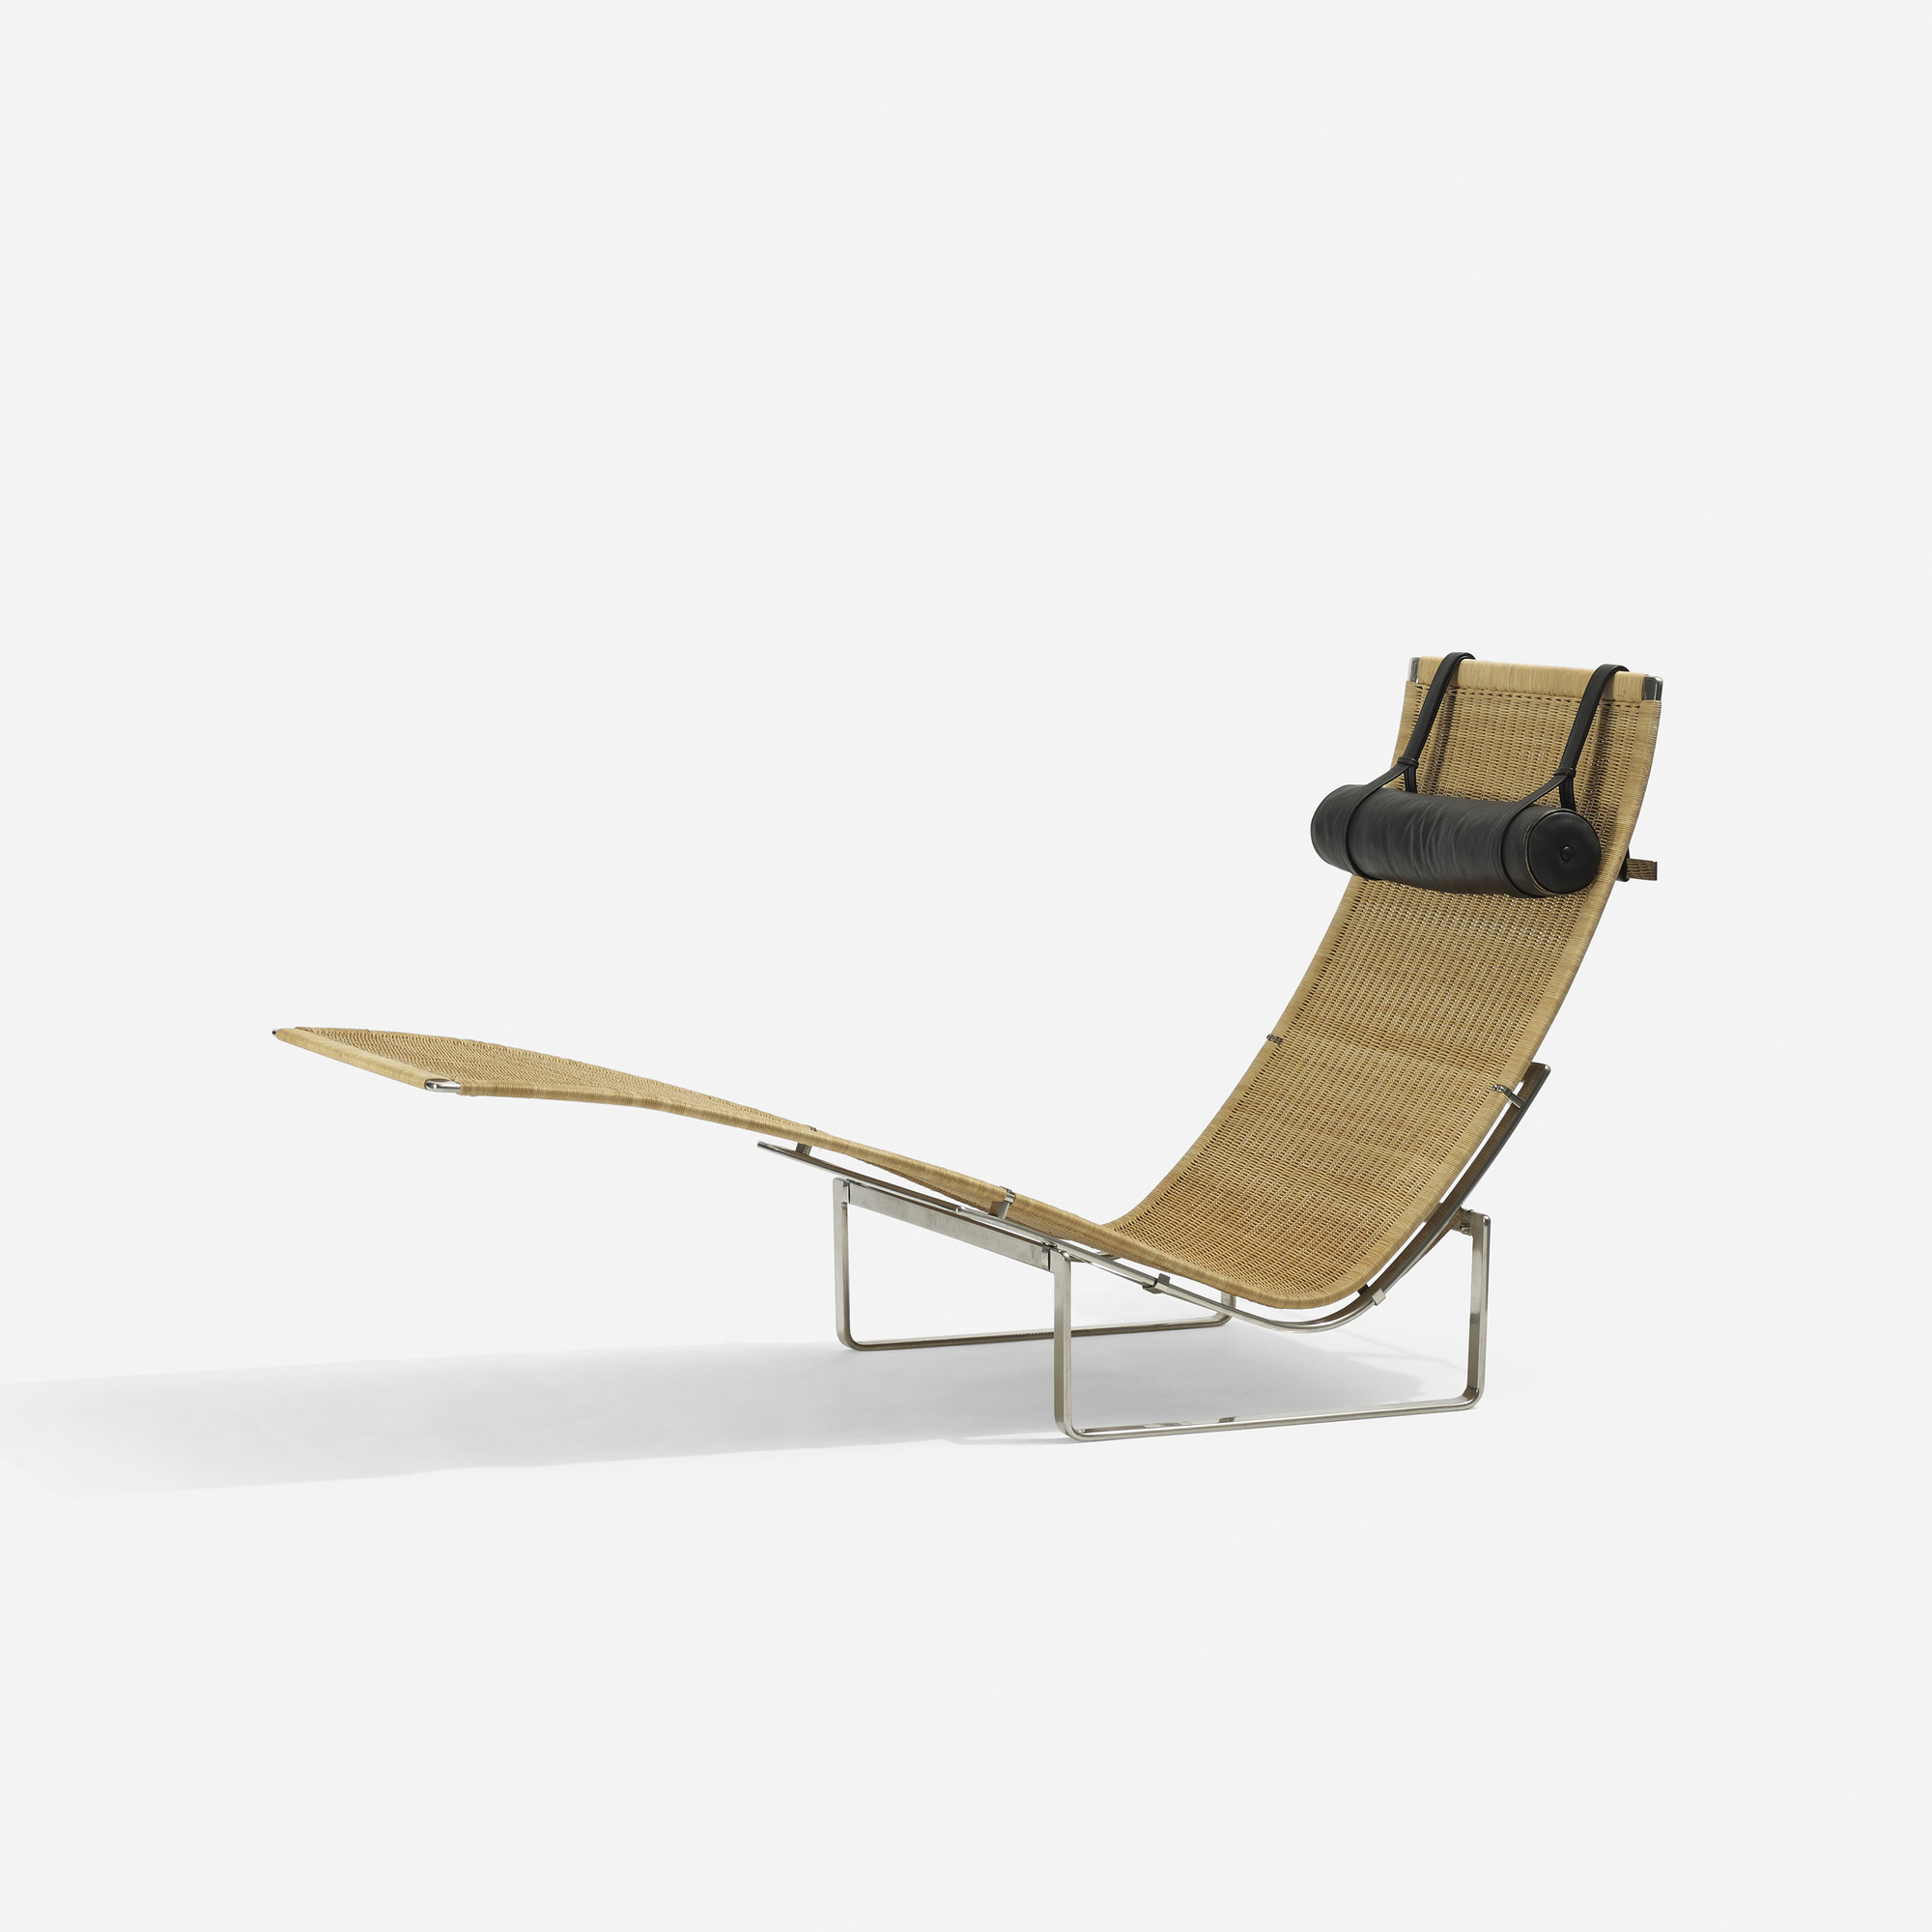 Chaise scandinave design home design architecture Chaise scandinave design